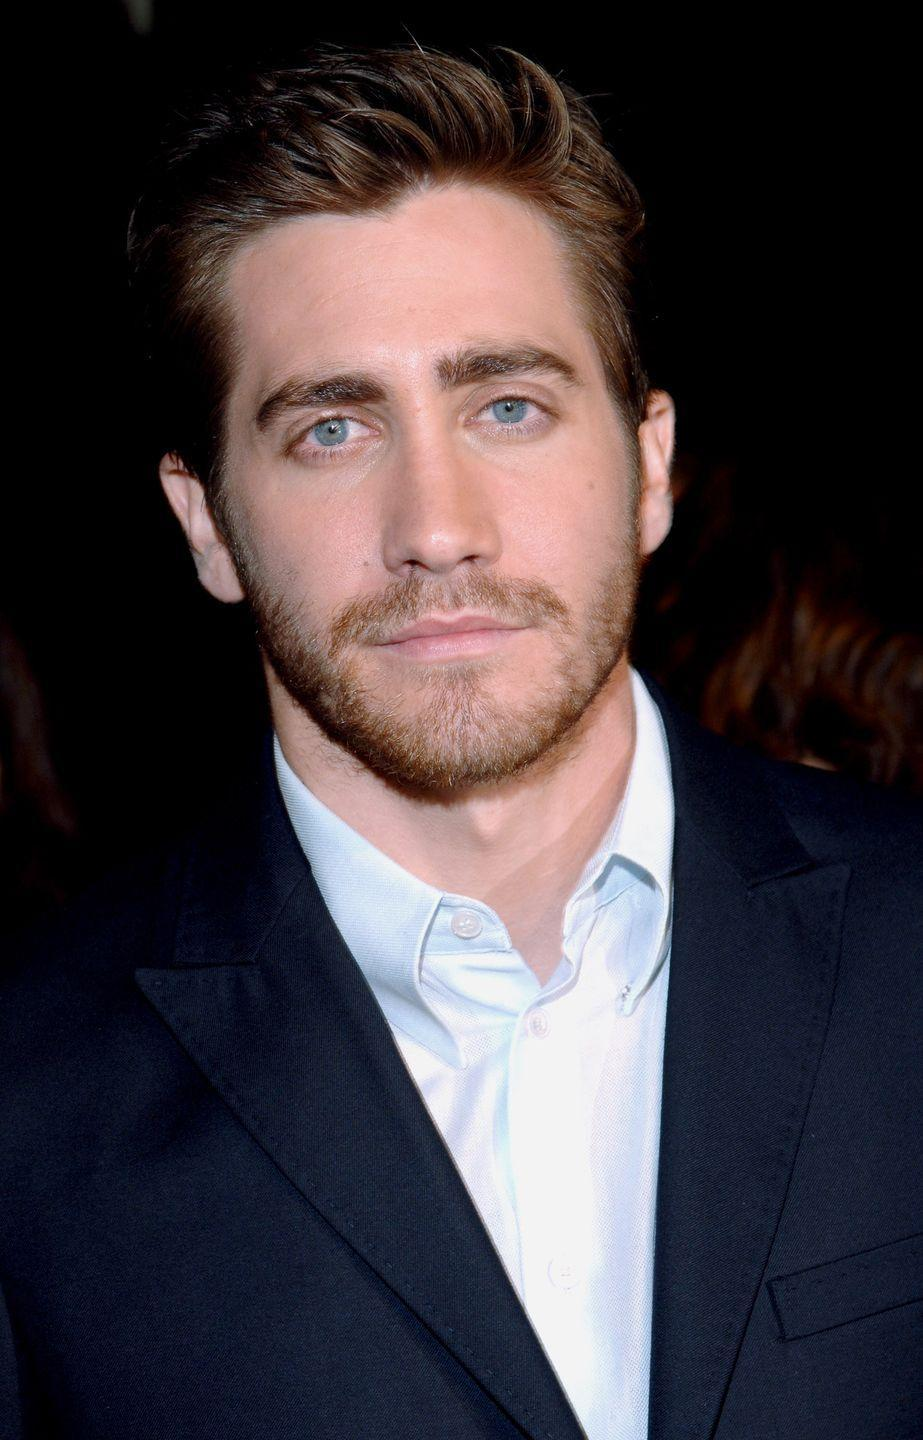 <p>Jake Gyllenhaal has become known for his consistent scruff and short swept hair ever since the actor was starting out in movies like <em>Donnie Darko</em>. </p>